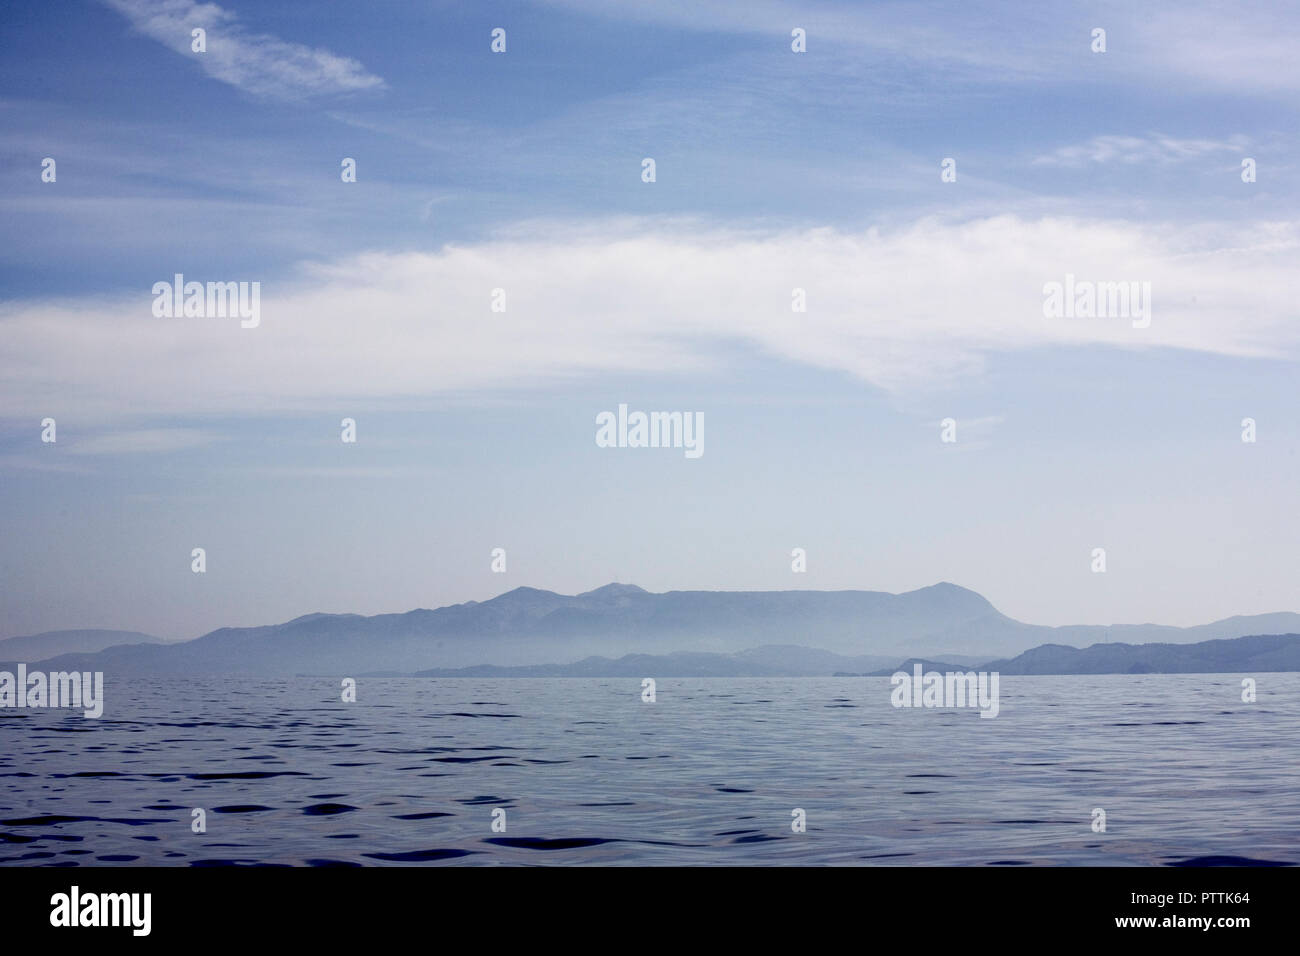 The mountains of Albania seen from on board a yacht off the North coast of Corfu - Stock Image